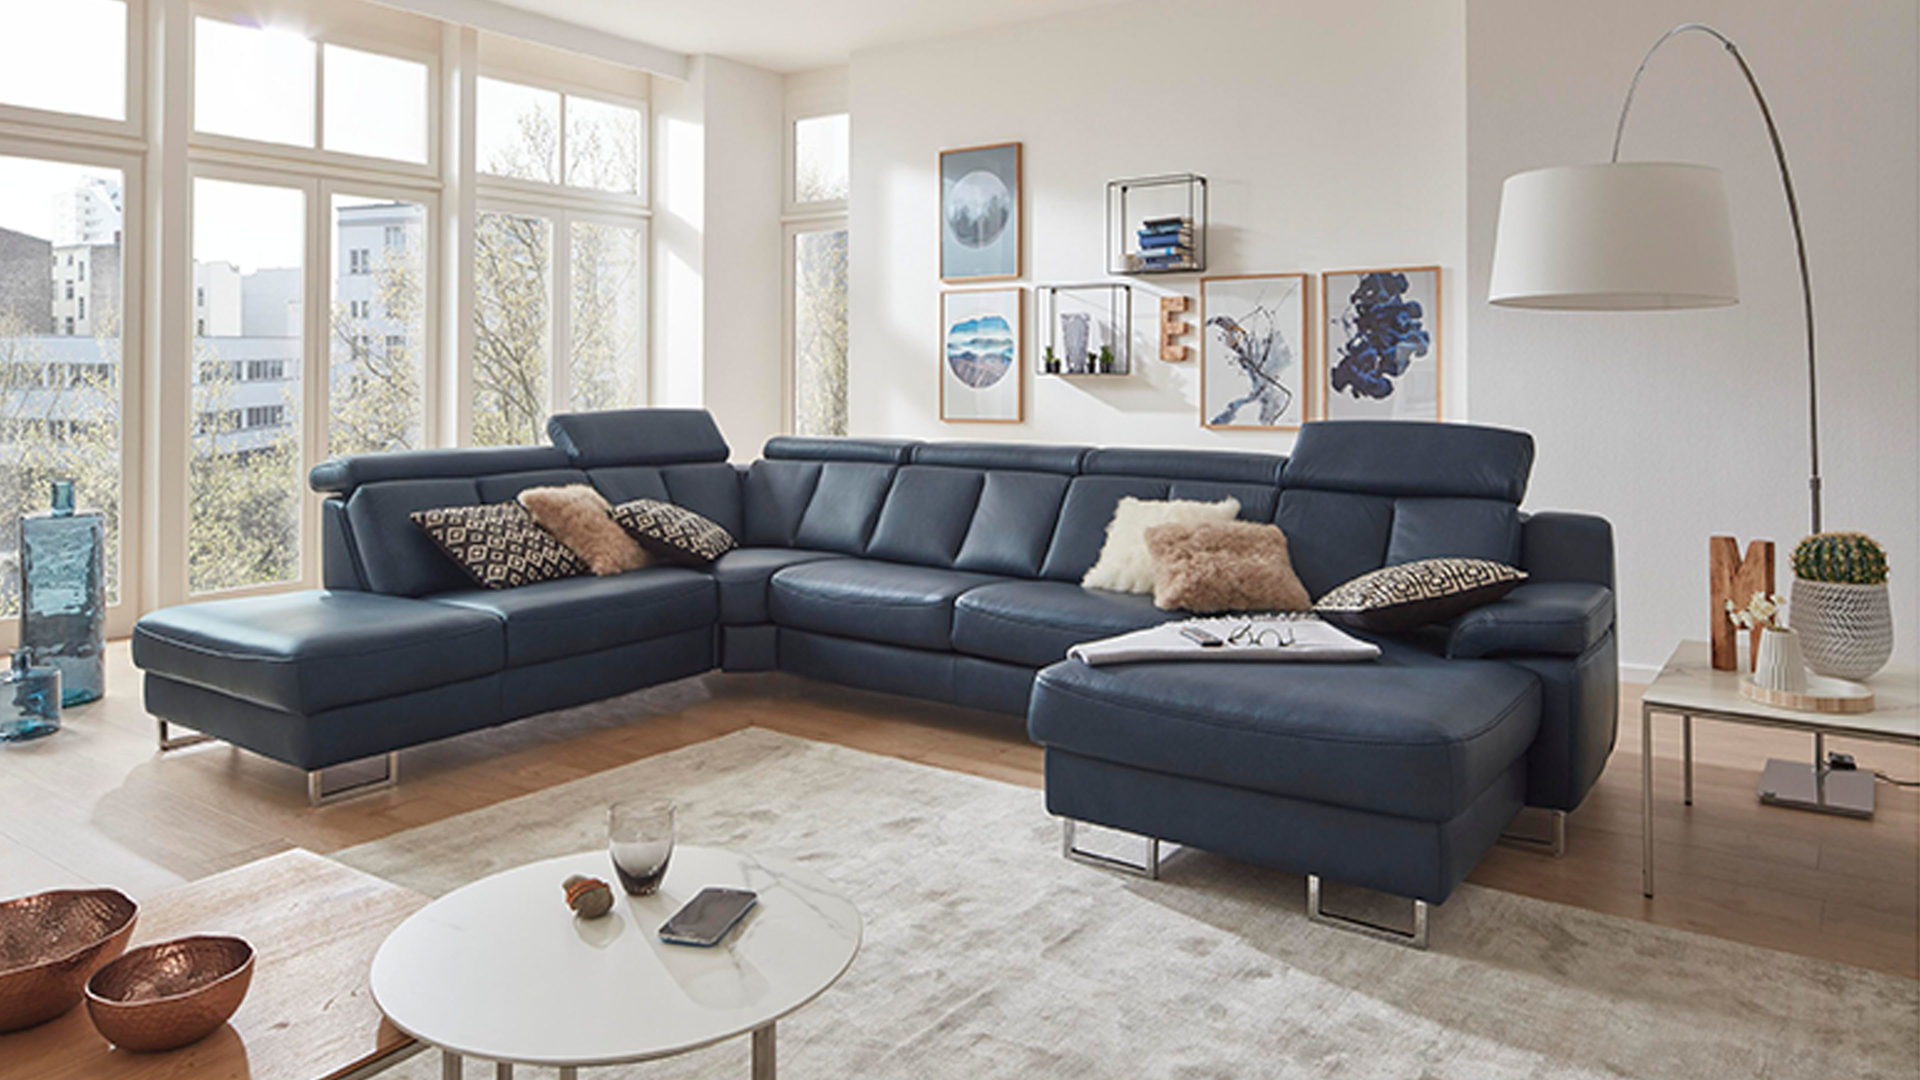 Interliving Sofa Serie 4050 Wohnlandschaft Nachtblaues Longlife Leder